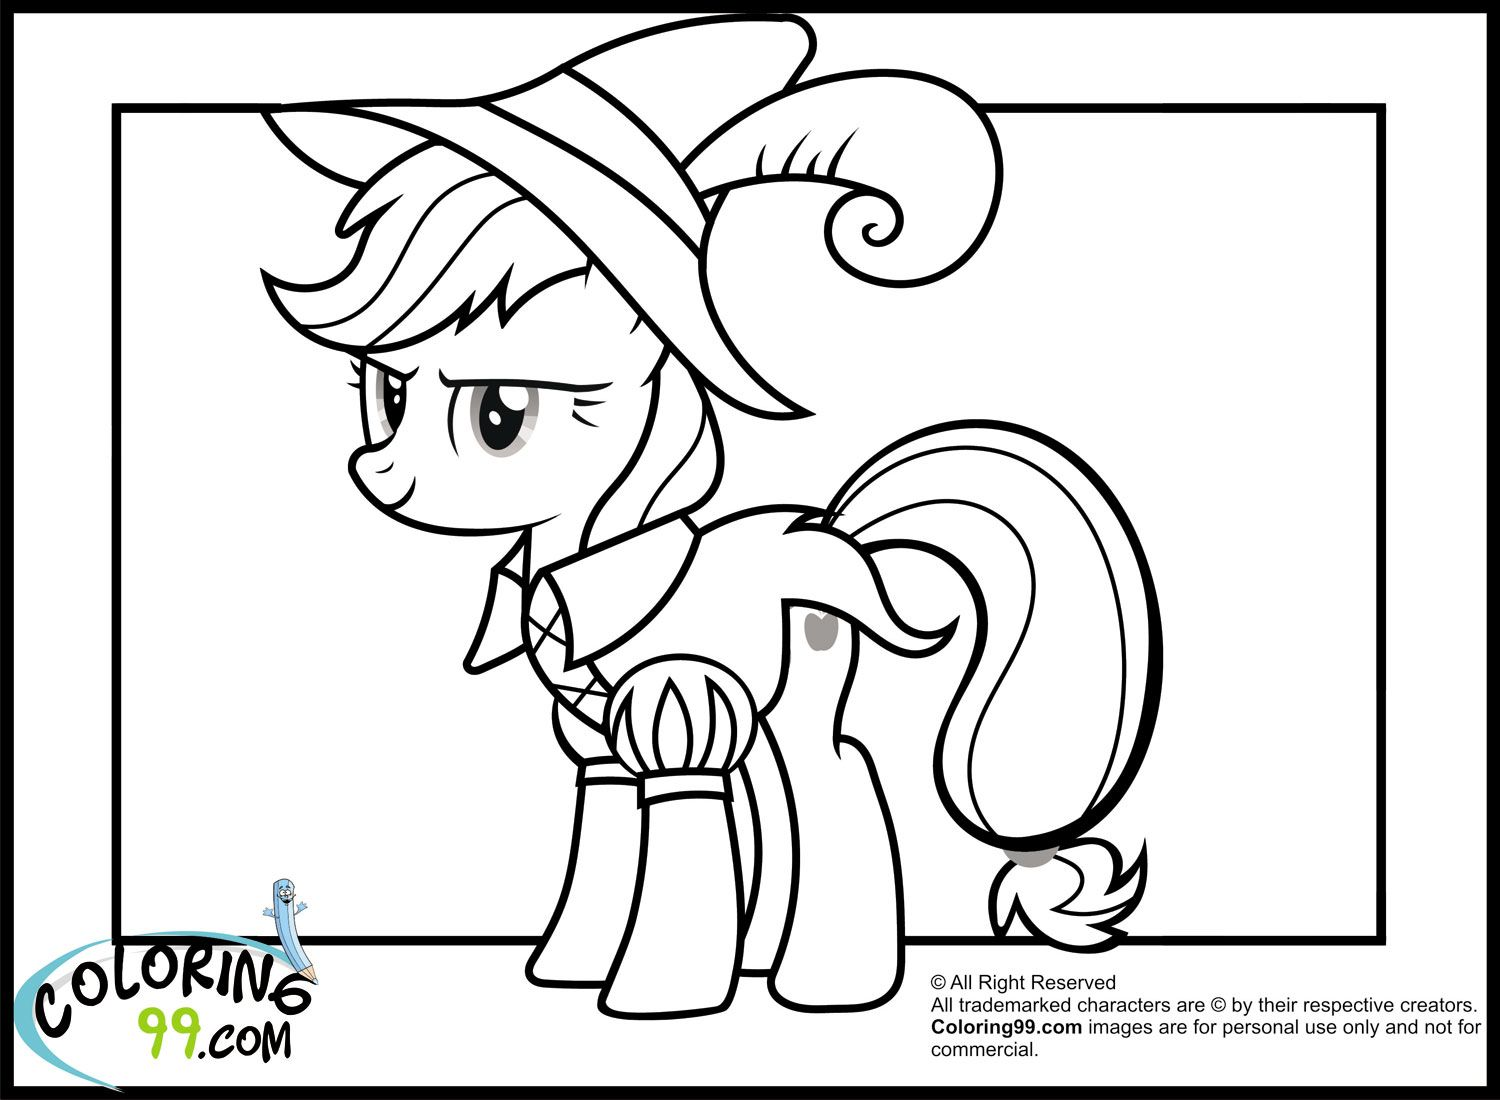 my little pony applejack in funny costume coloring pagesjpg 1500